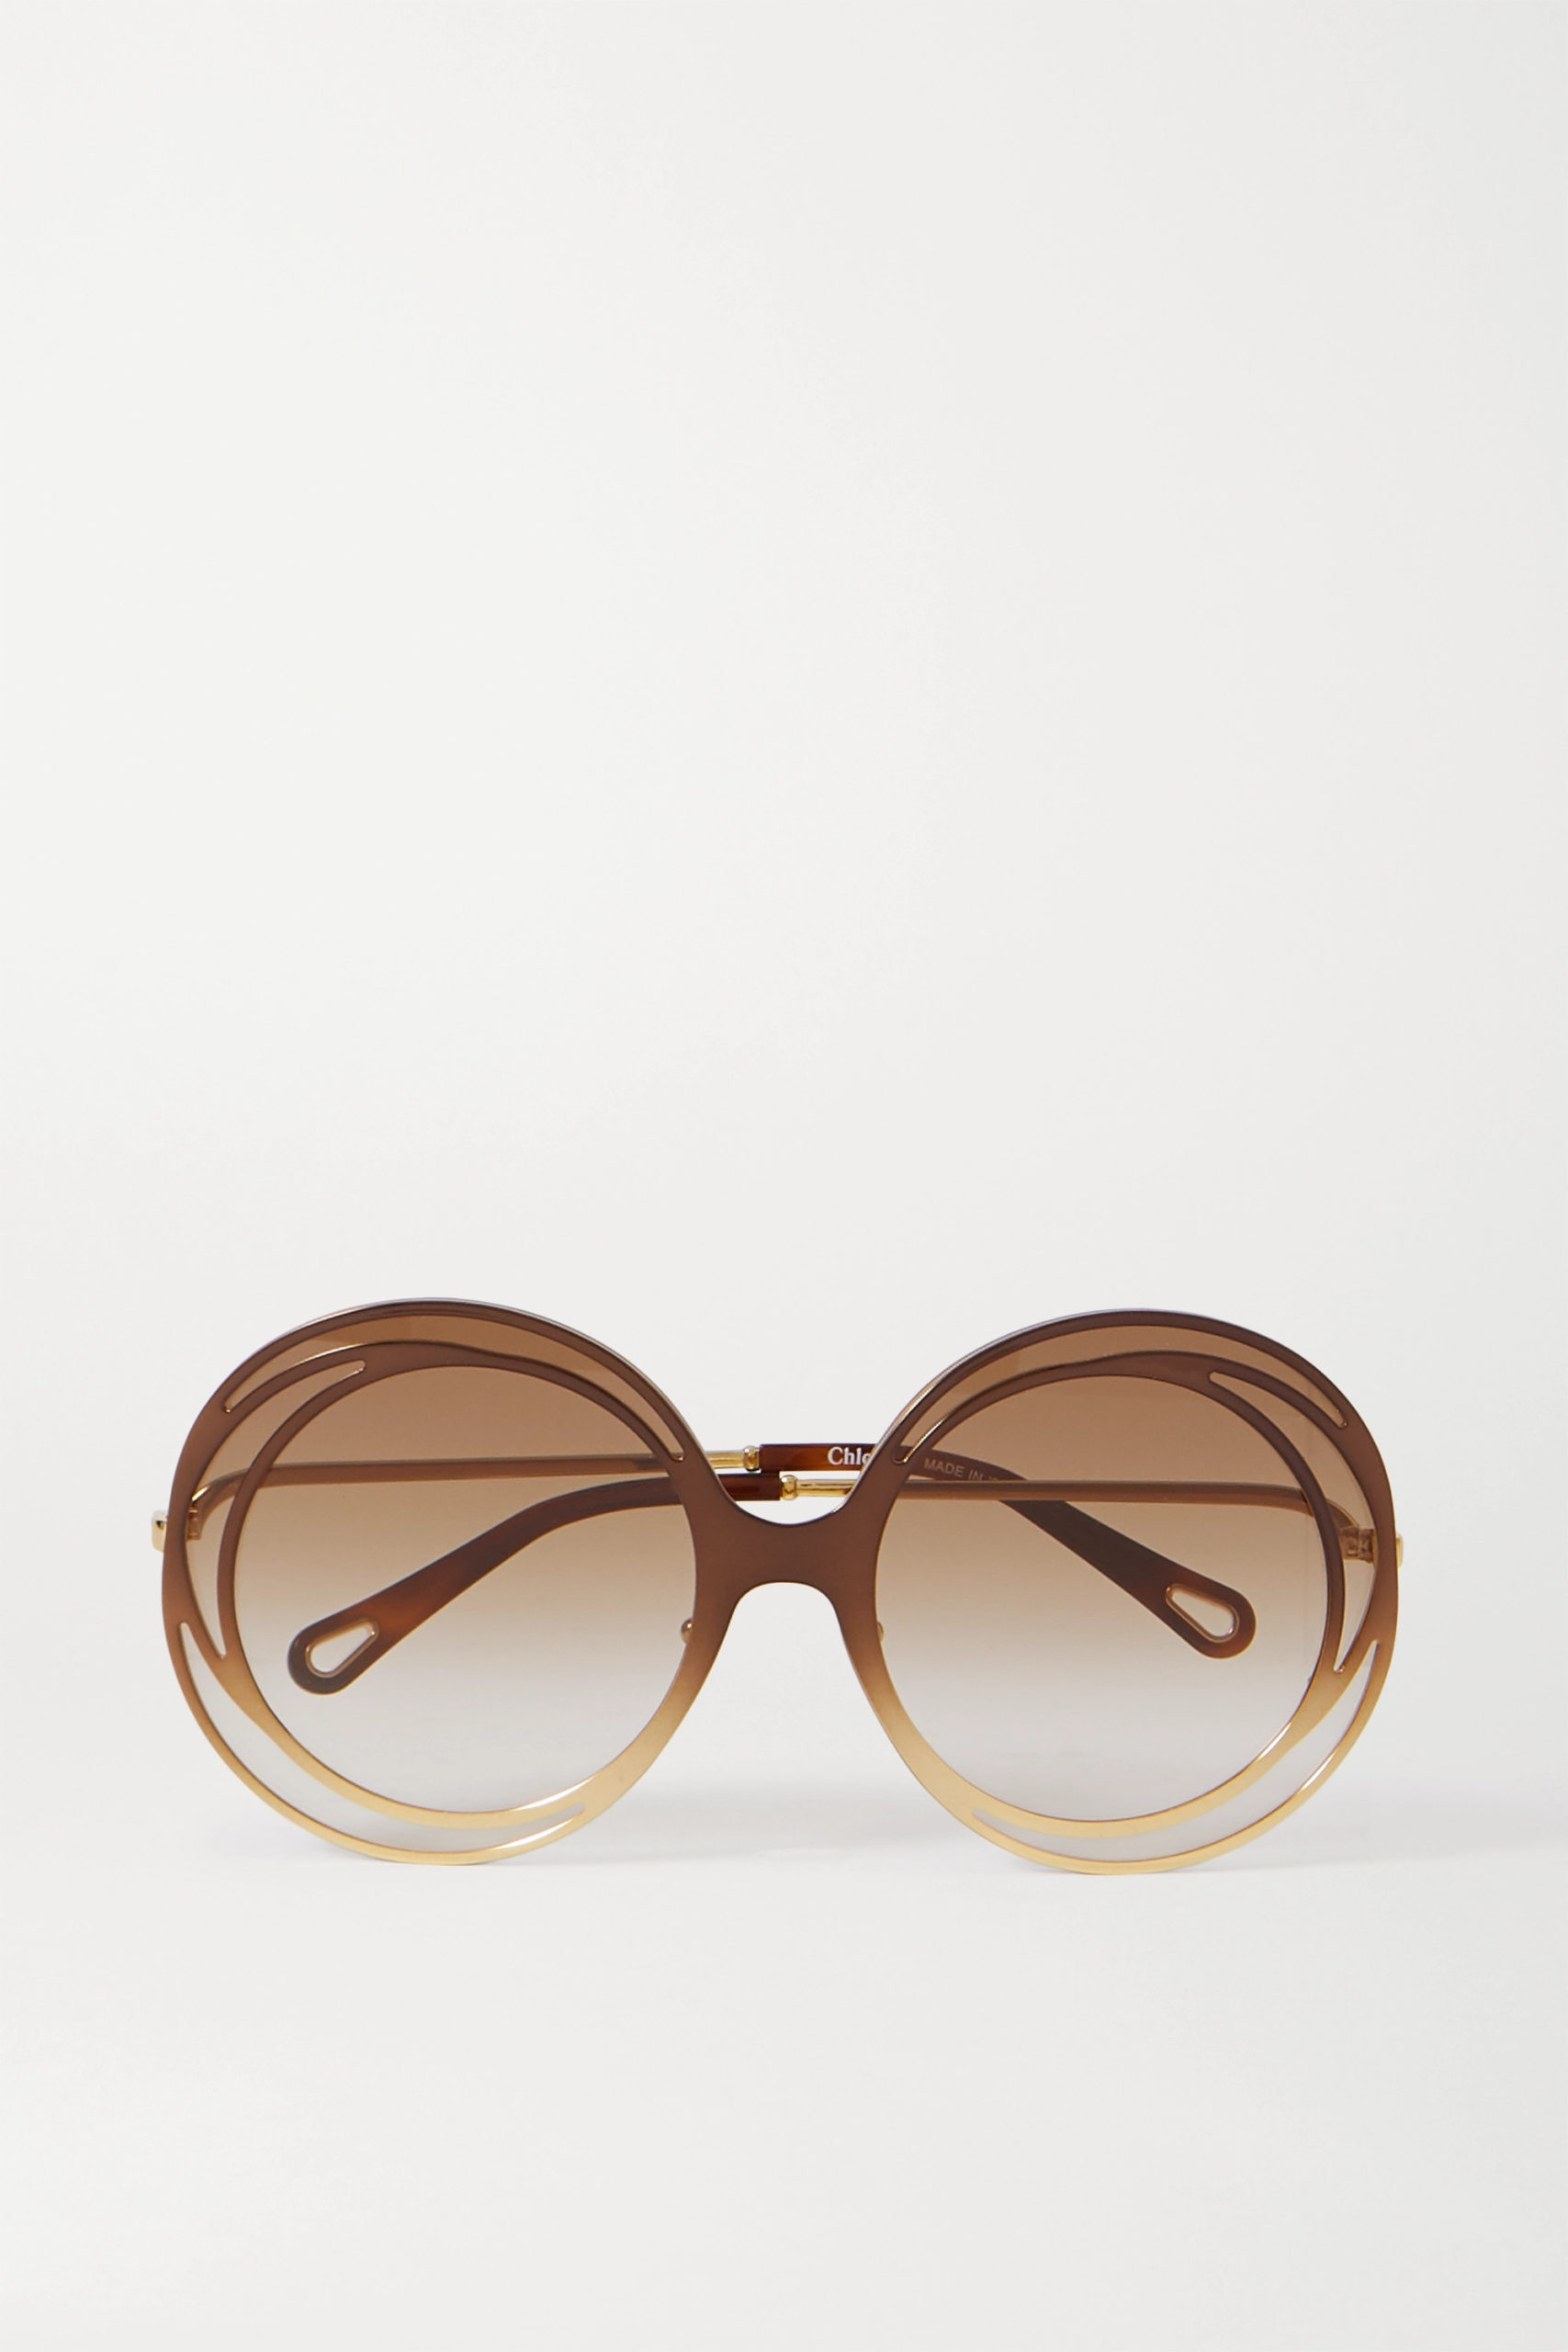 Chloe — Carlina Oversized Round-frame Acetate And Gold-tone Sunglasses